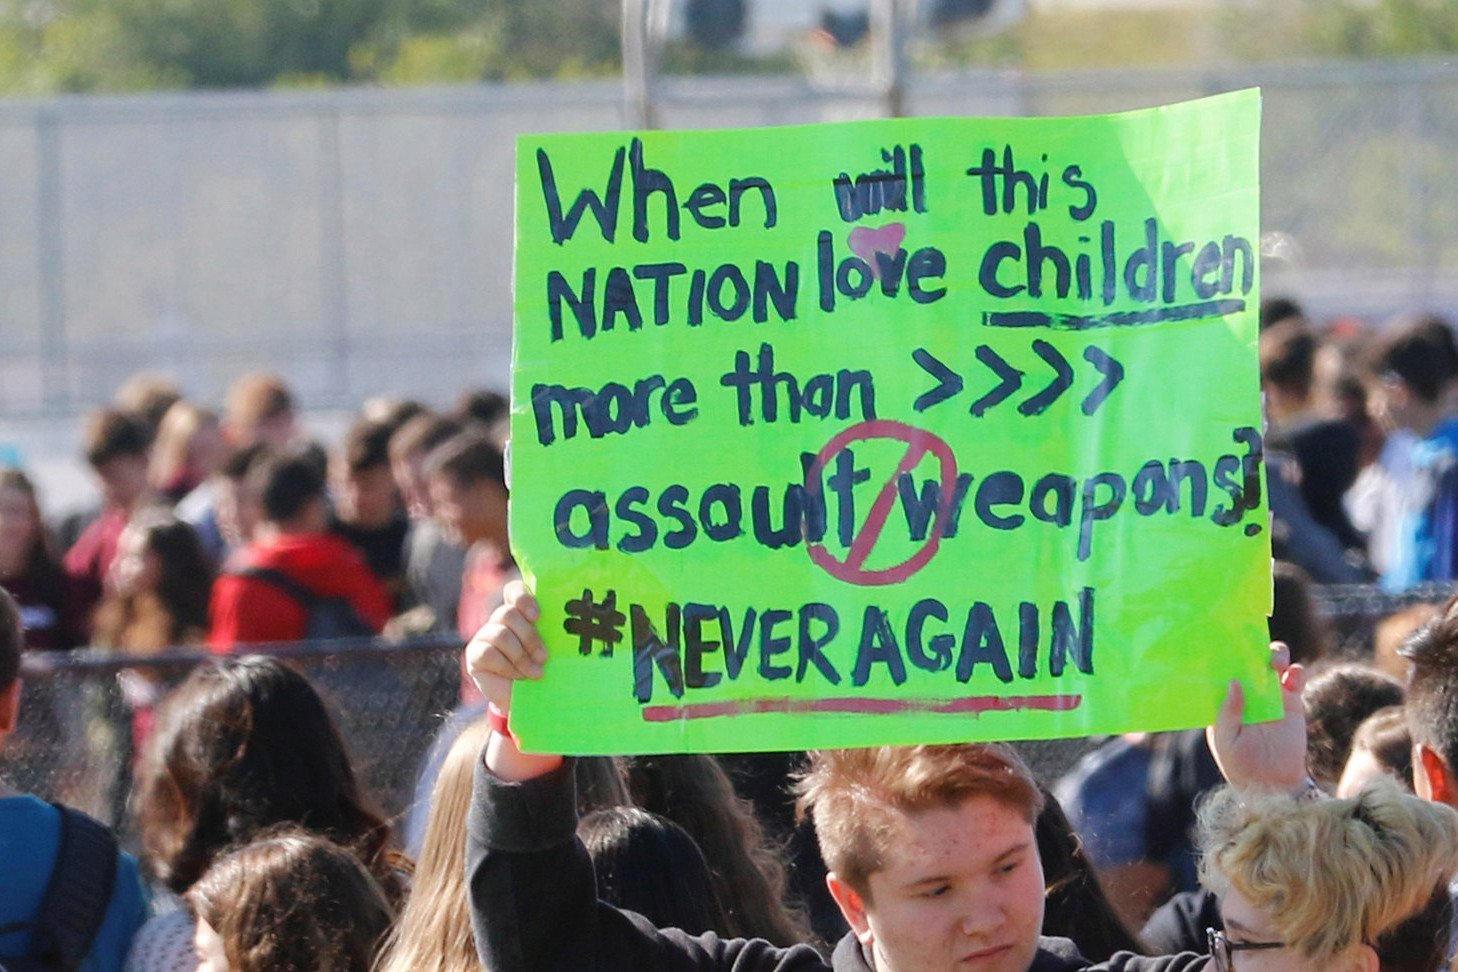 School to suspend students who walked out for gun protest